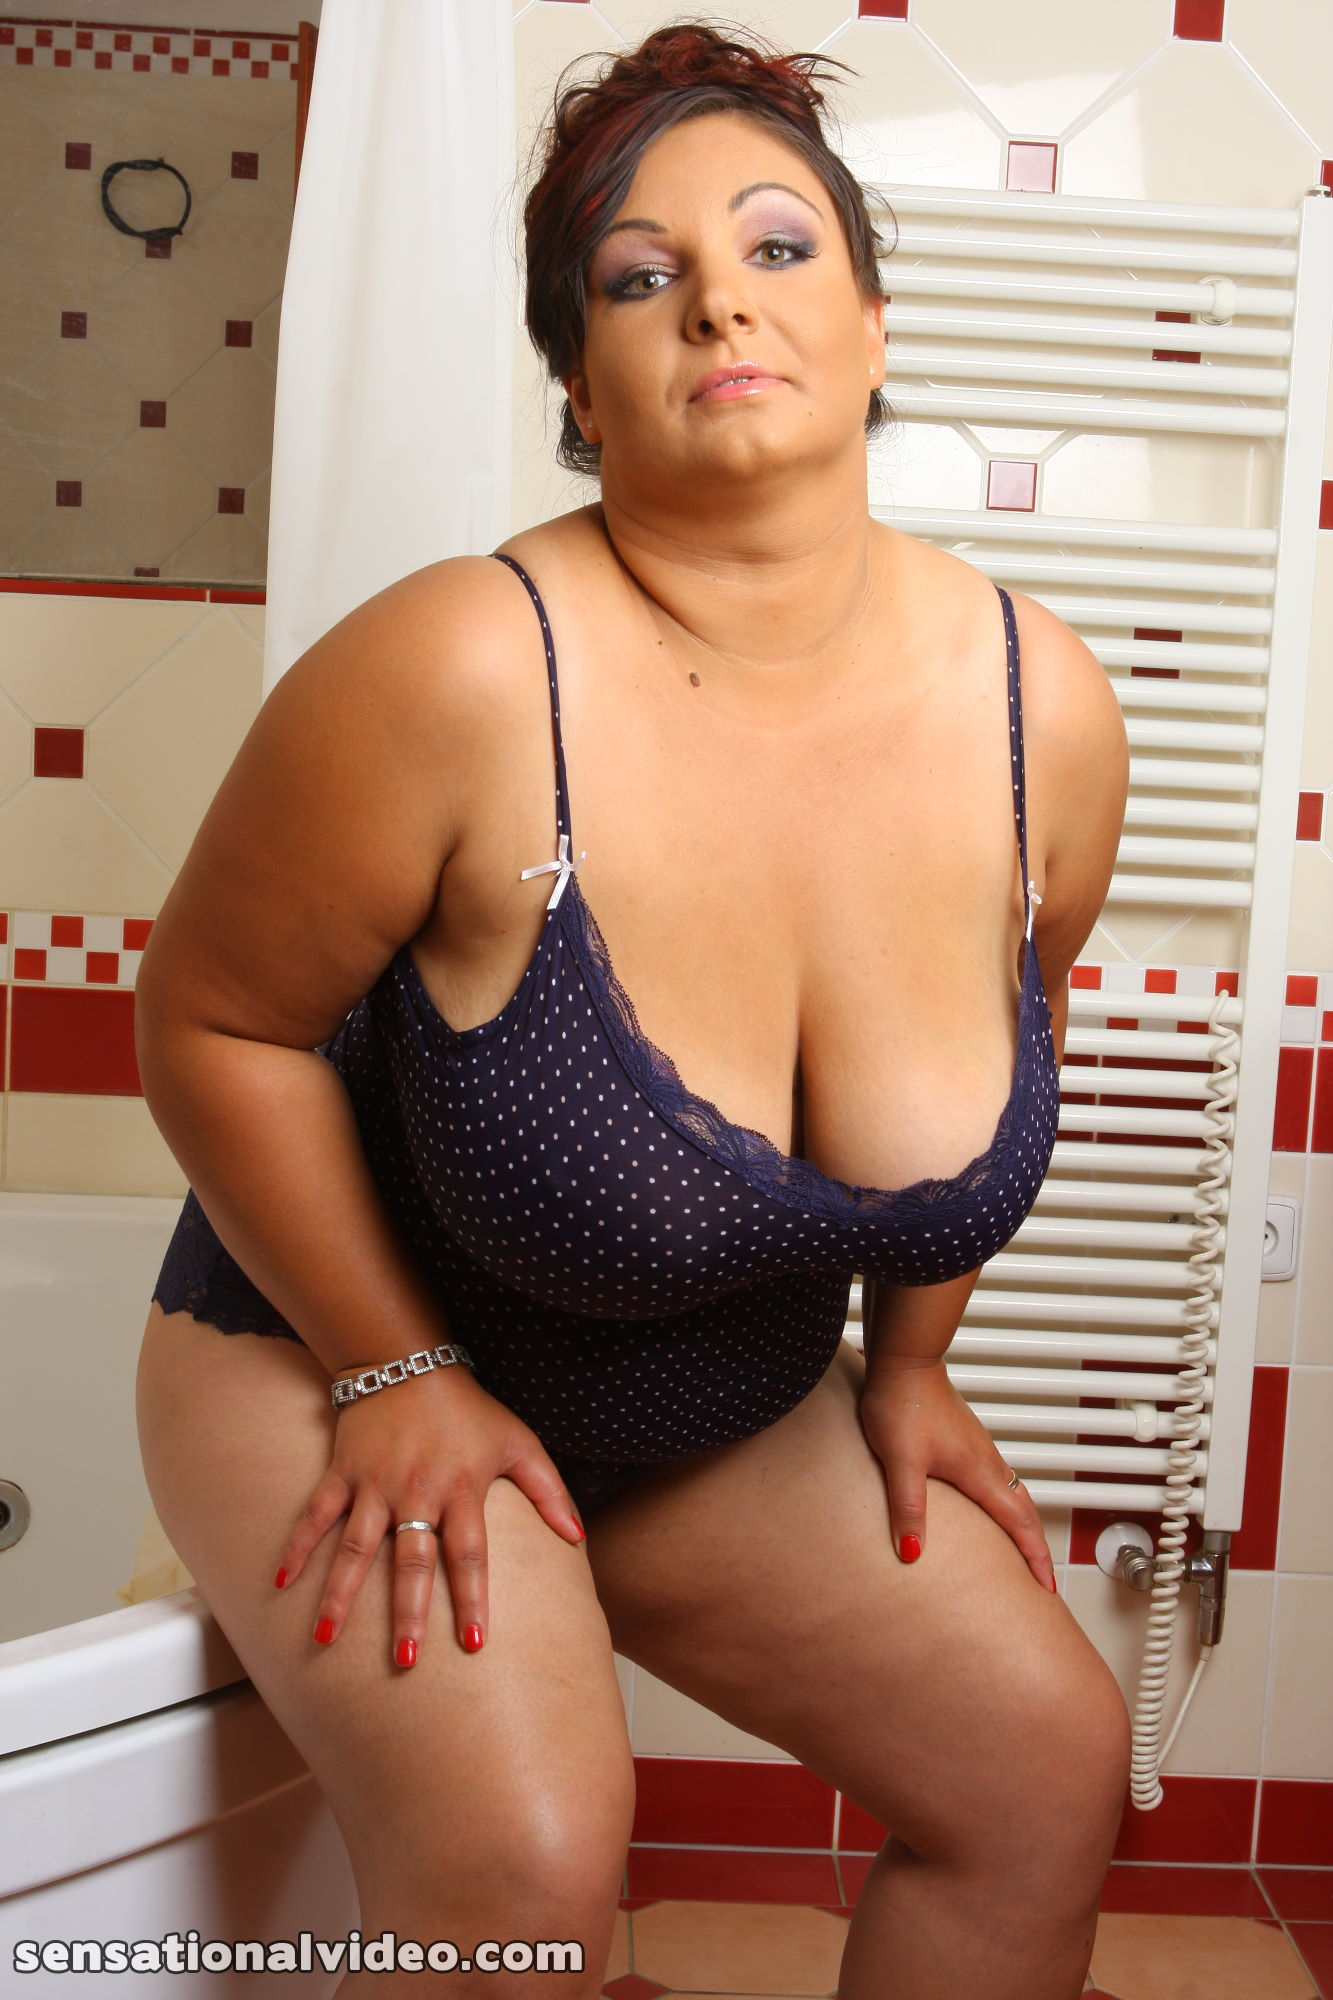 lesgalls spicytitties plumperpass gal667 pic 4